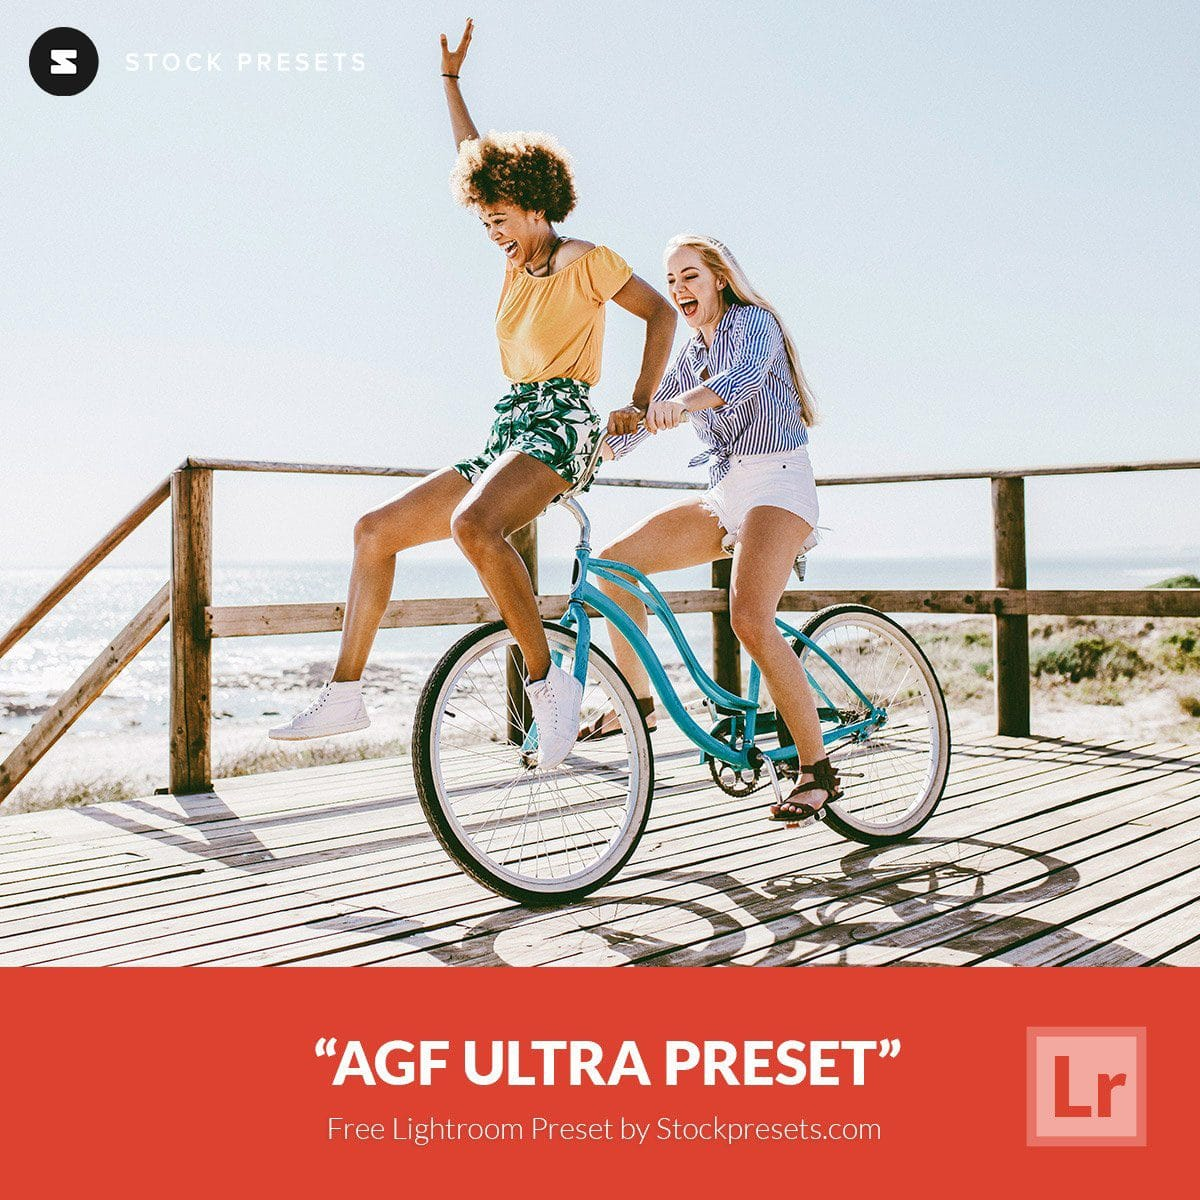 Free-Lightroom-Preset-AGF-Ultra-Film-Preset-Stockpresets.com